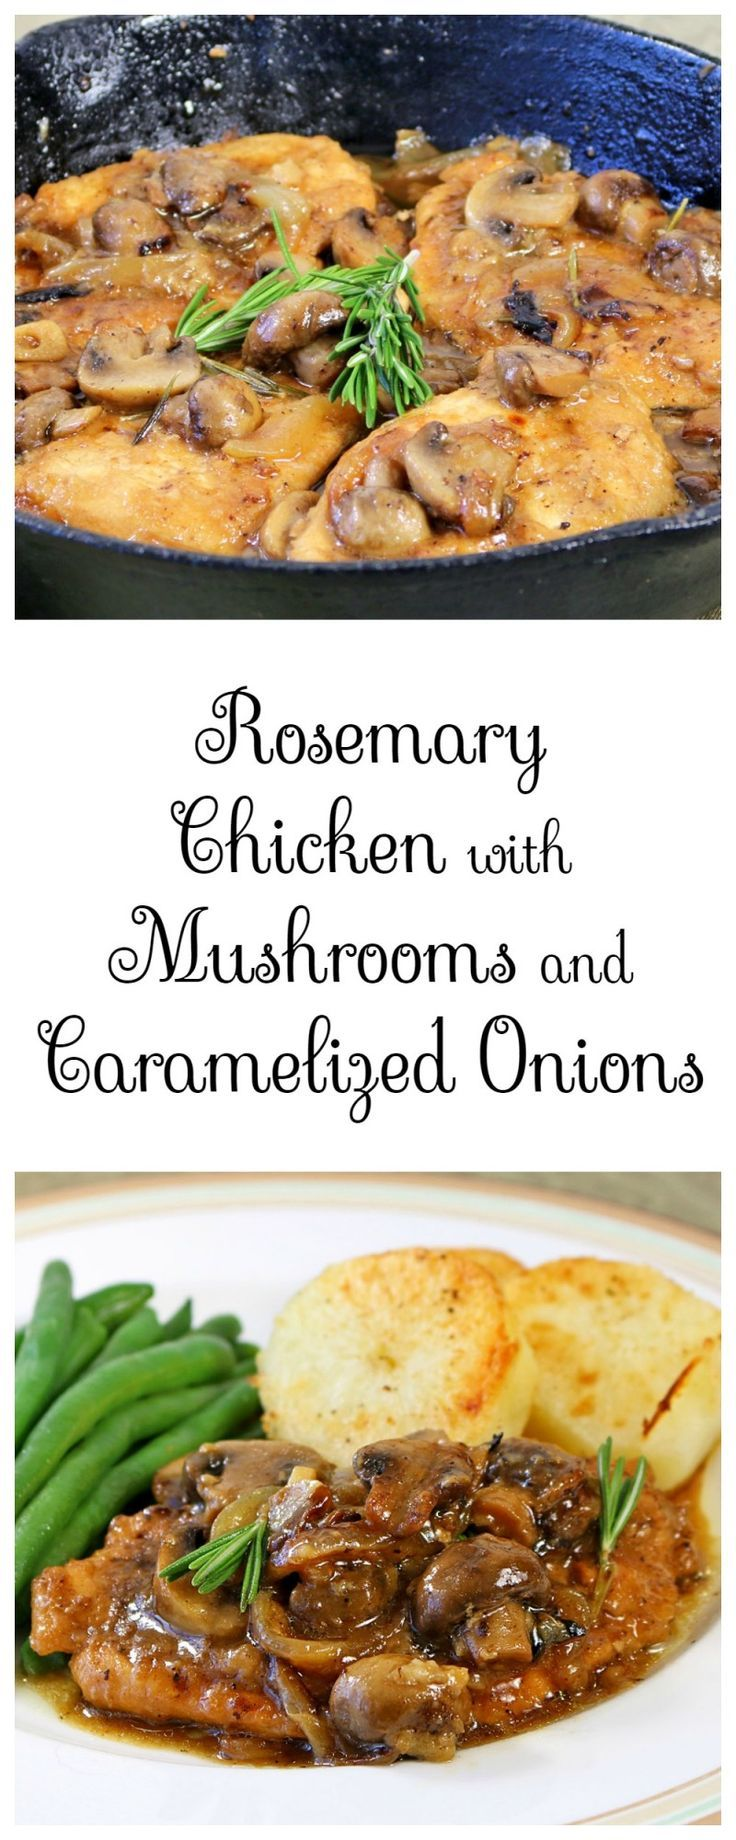 Rosemary Chicken with Mushrooms and Caramelized Onions served with ...